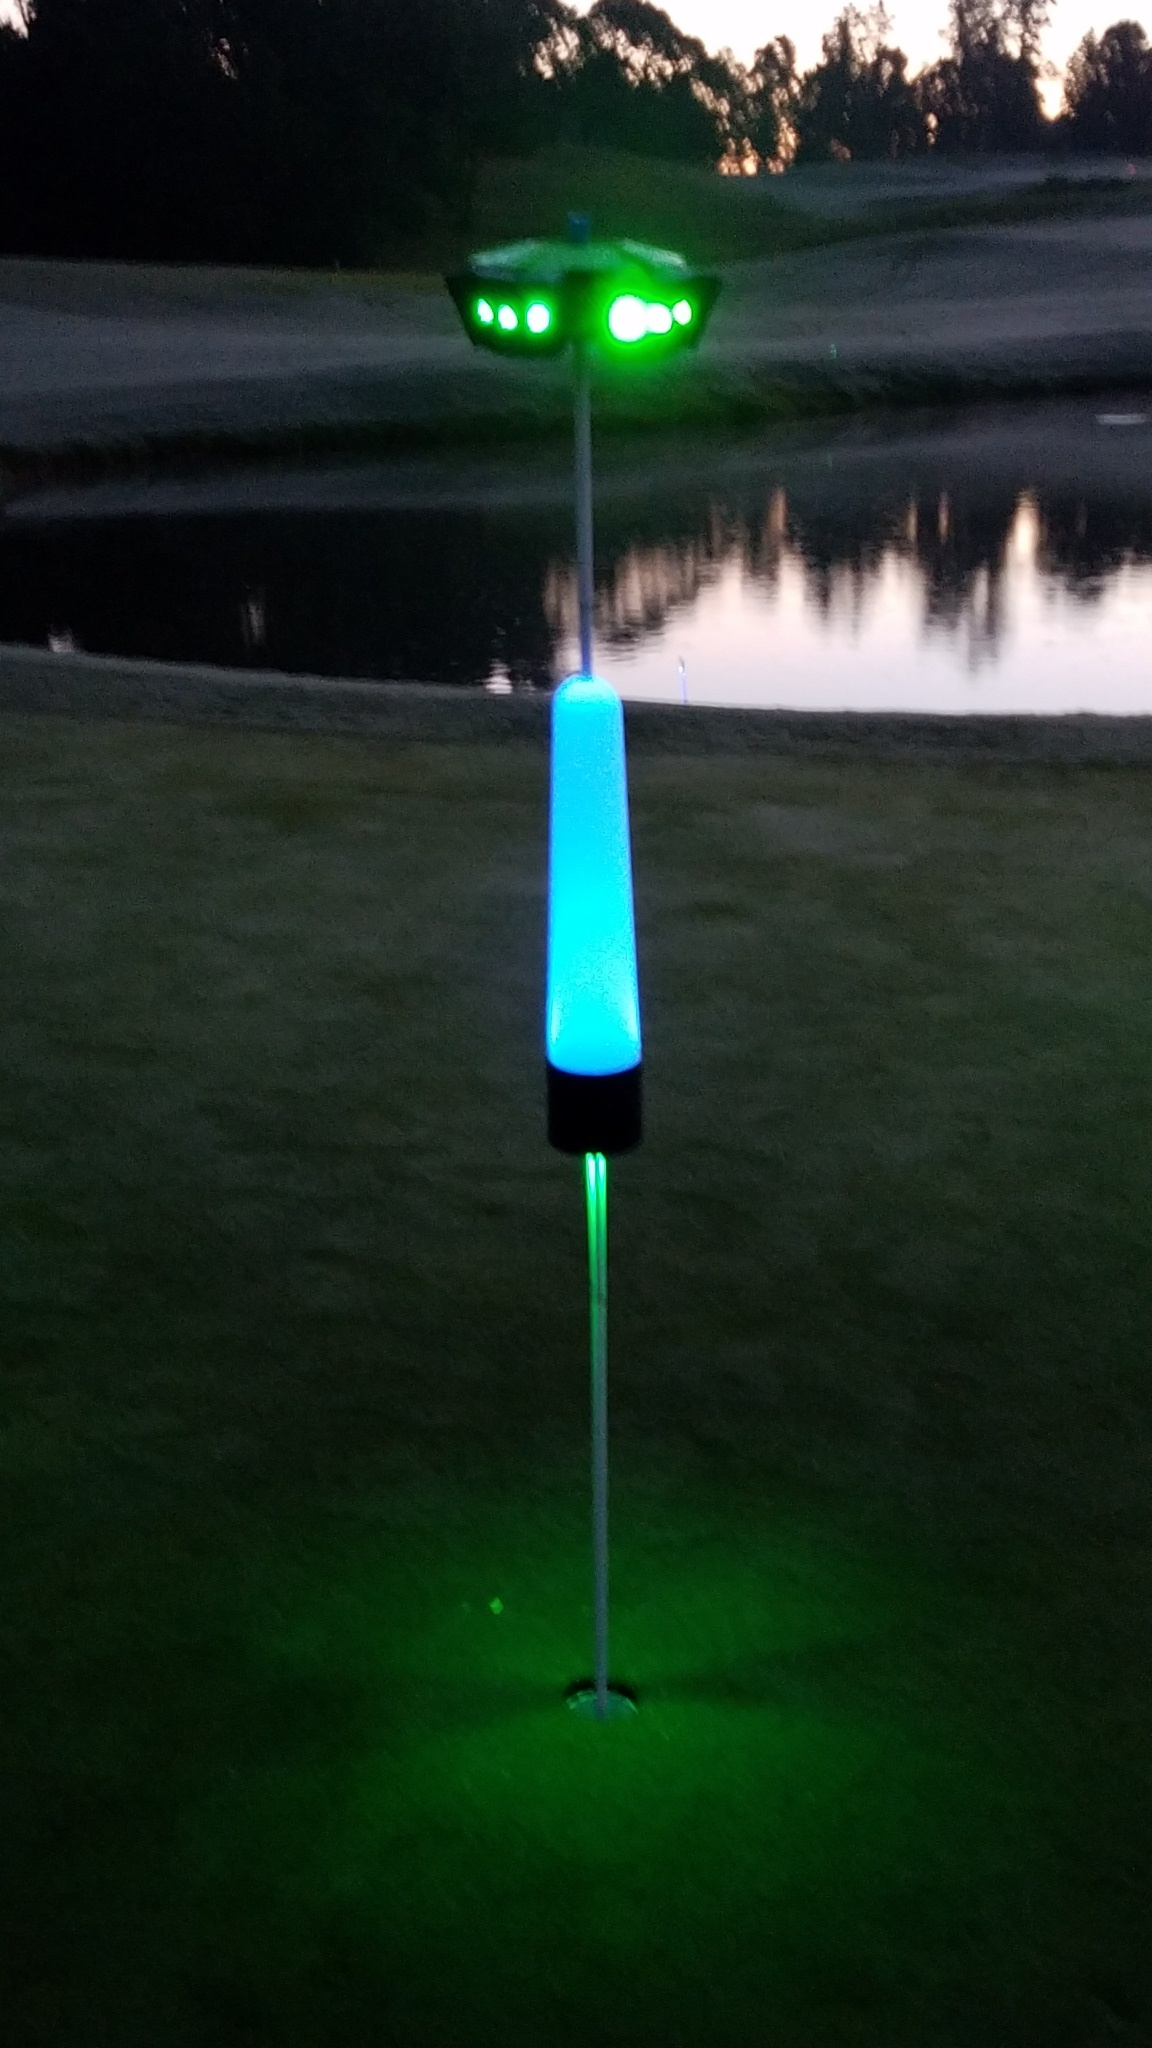 These are putting lights for night golf events and parties